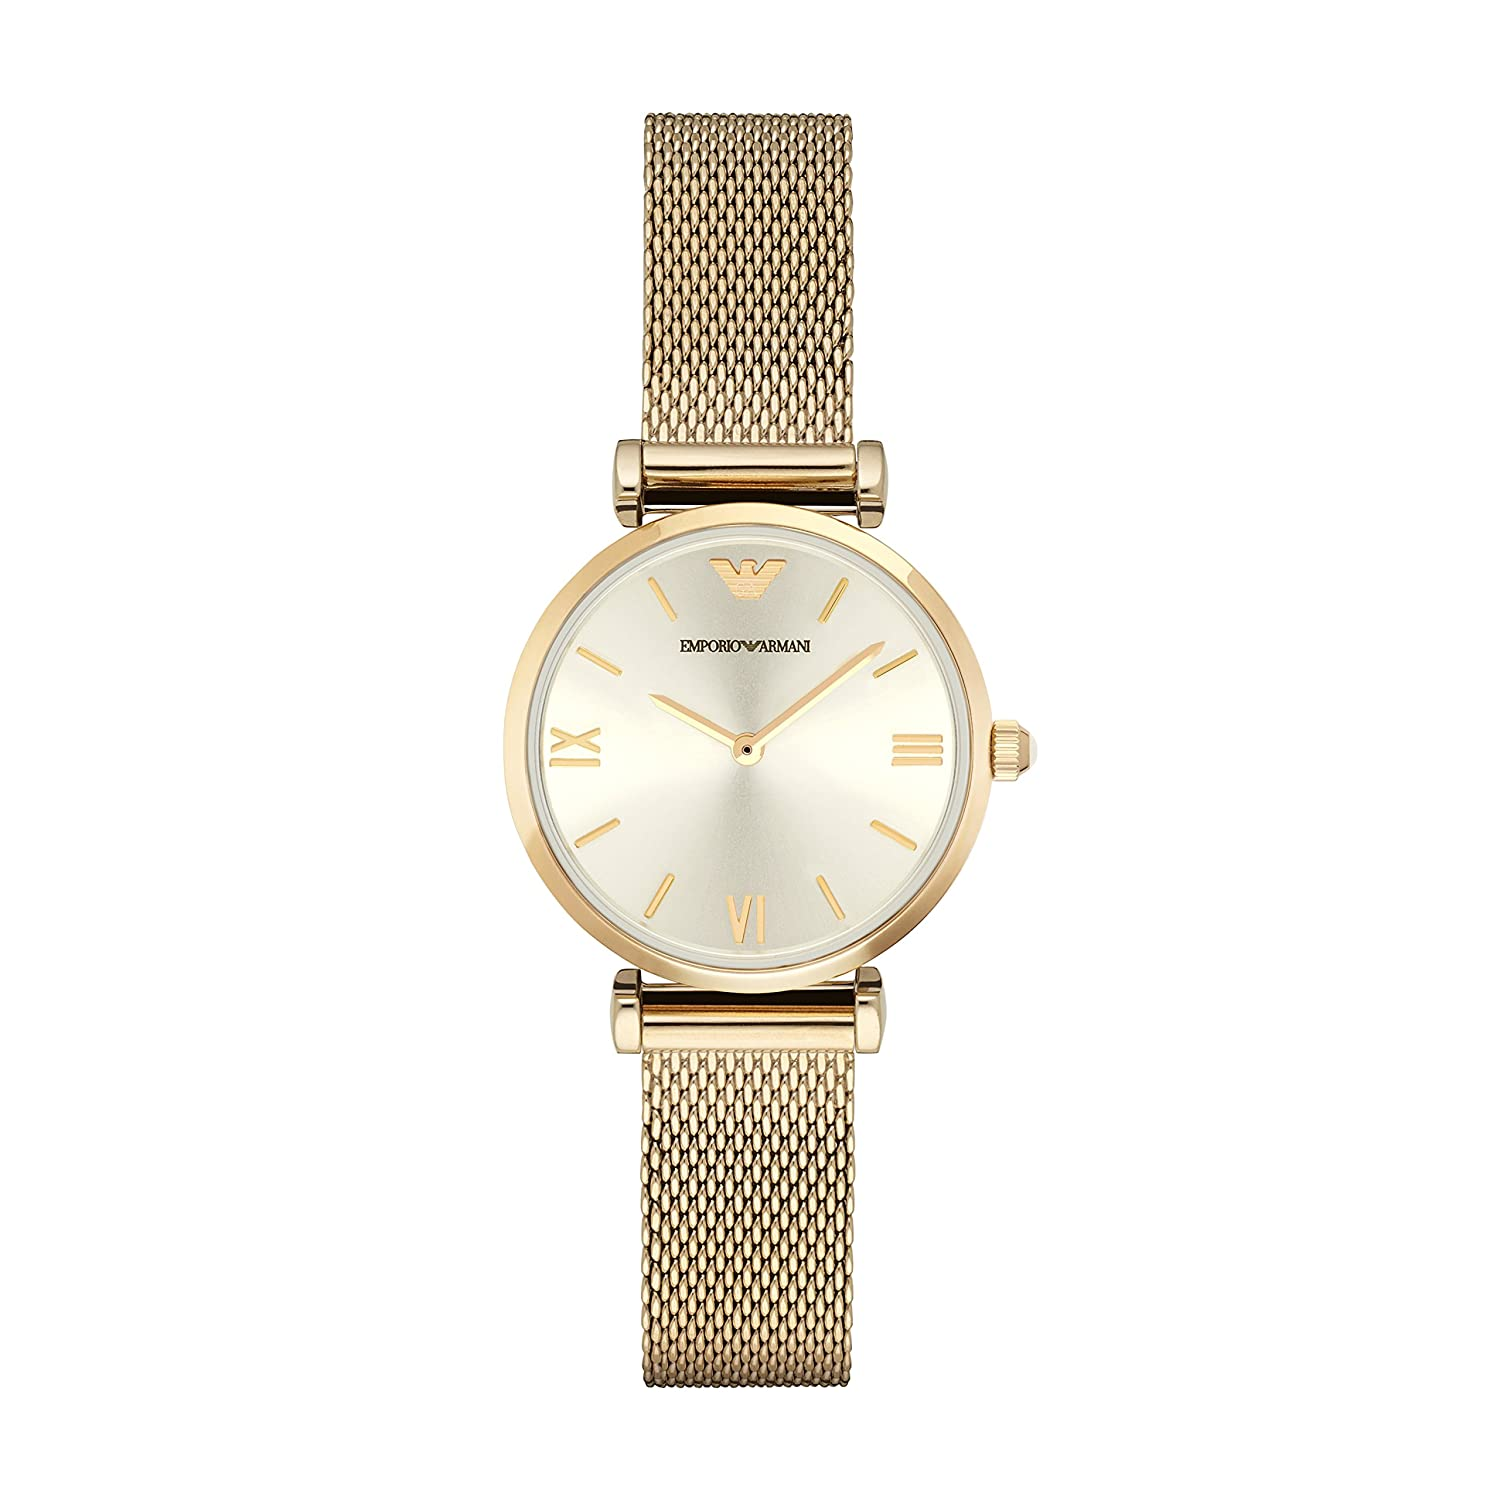 05aee1d1d6f3 Emporio Armani AR1957 Ladies Gianni T-Bar Yellow Gold Steel Bracelet Watch:  Amazon.ca: Watches